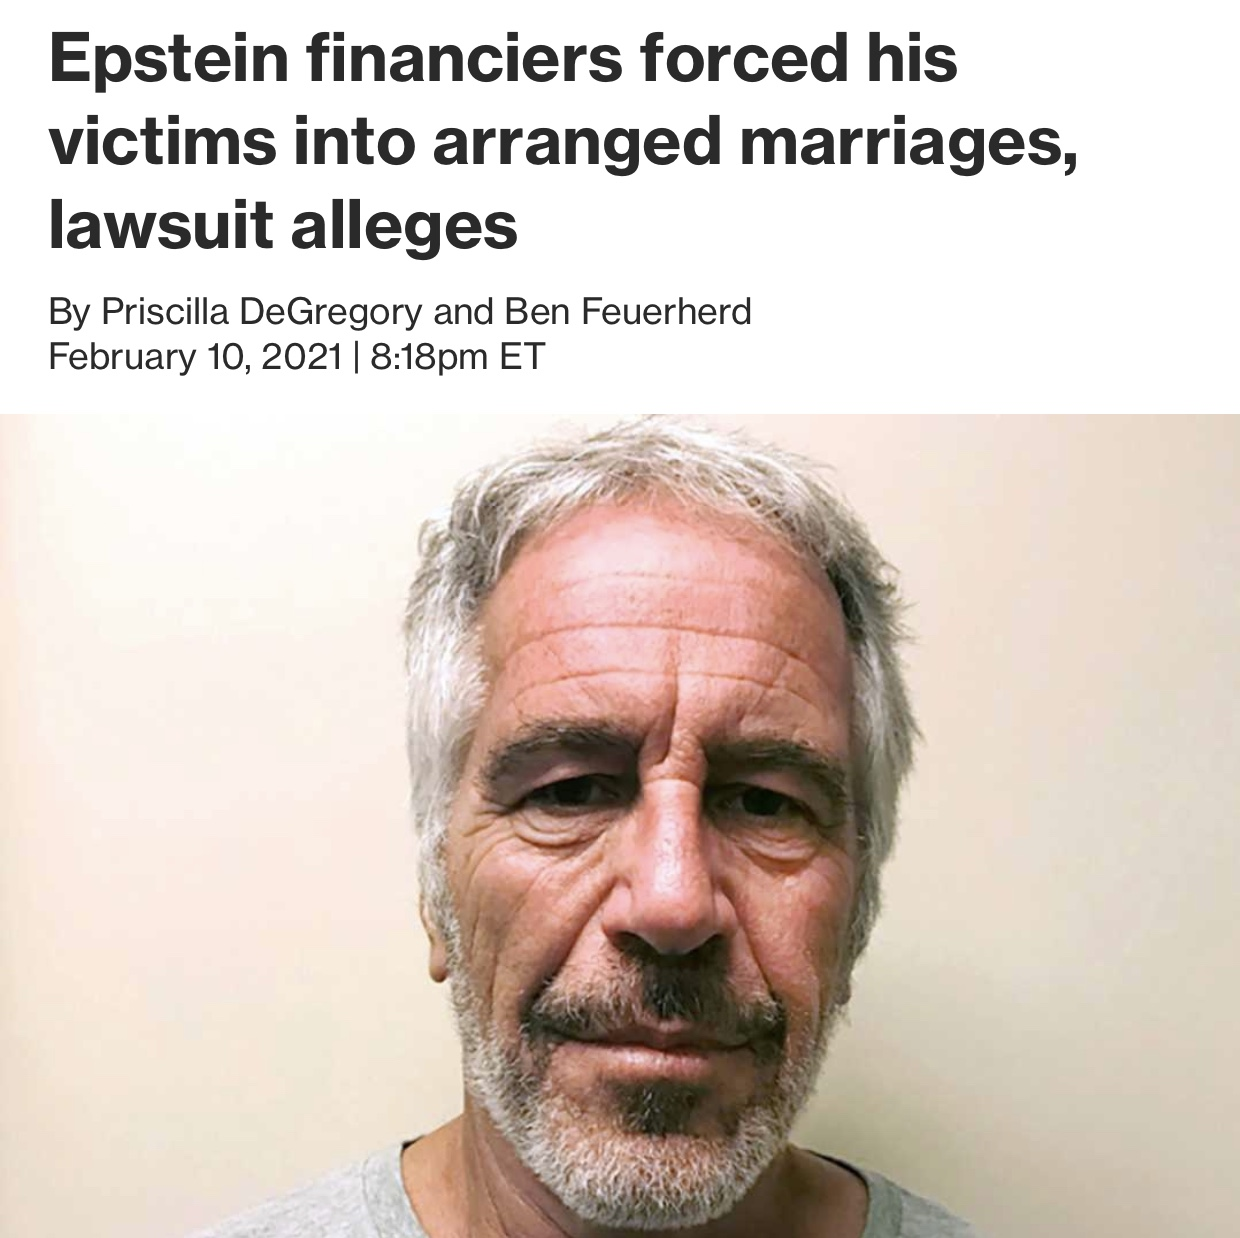 Epstein financiers forced his victims into arranged marriages, lawsuit alleged